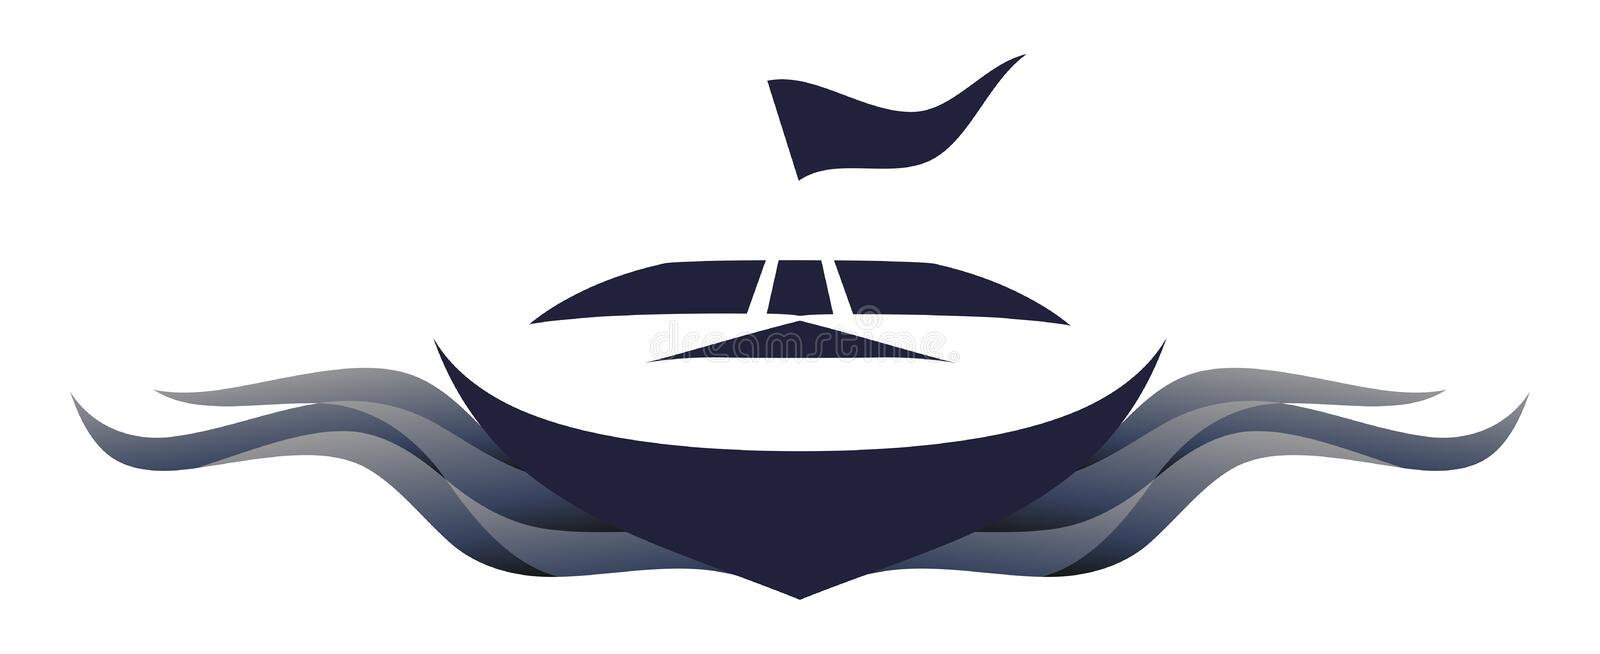 Speedboat Logo Symbol Illustration. Logo of a speedboat from the front view with a flag on top vector illustration